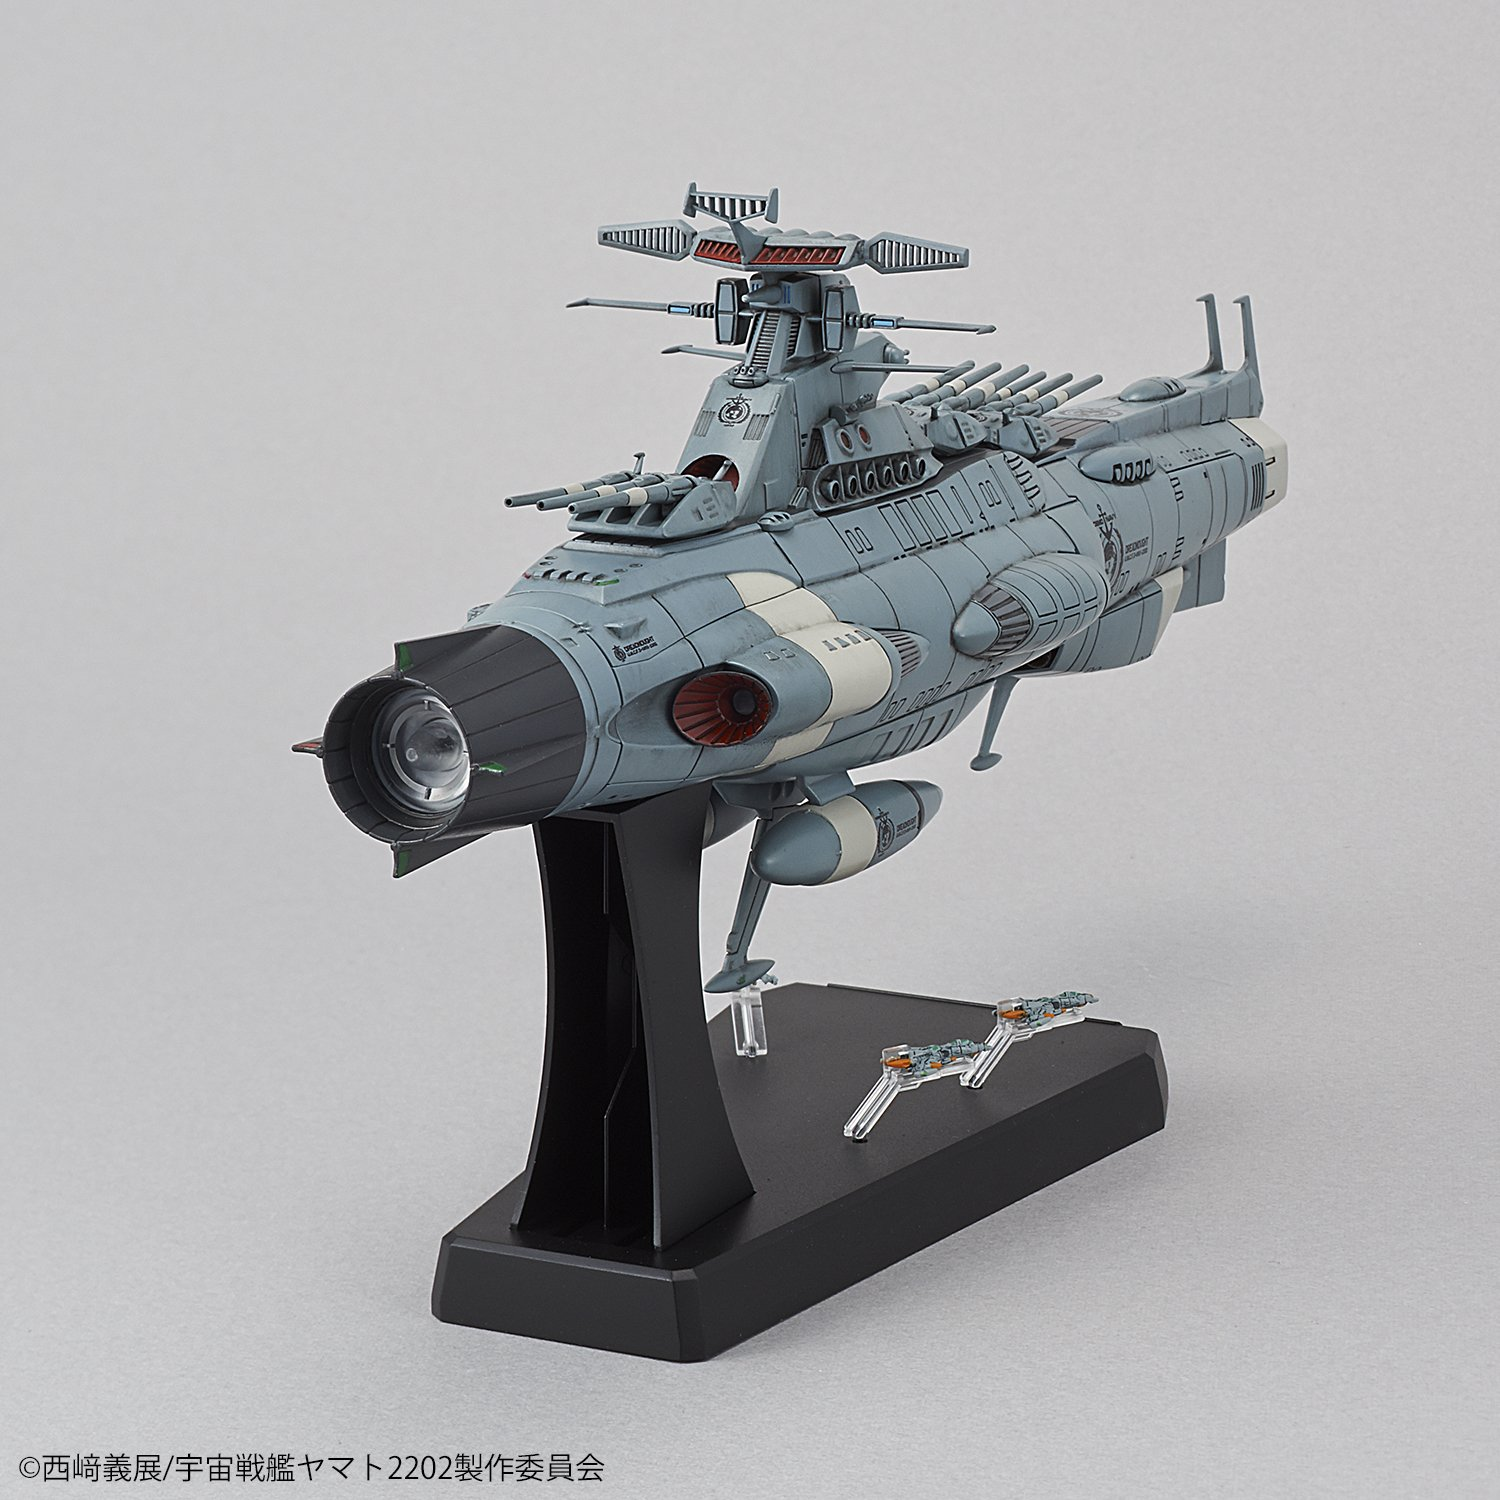 "Amazon.com: Bandai Hobby Dreadnought, Yamato 2202"", Bandai Star Blazers  1/1000 Hobby Space Ship: Toys & Games"